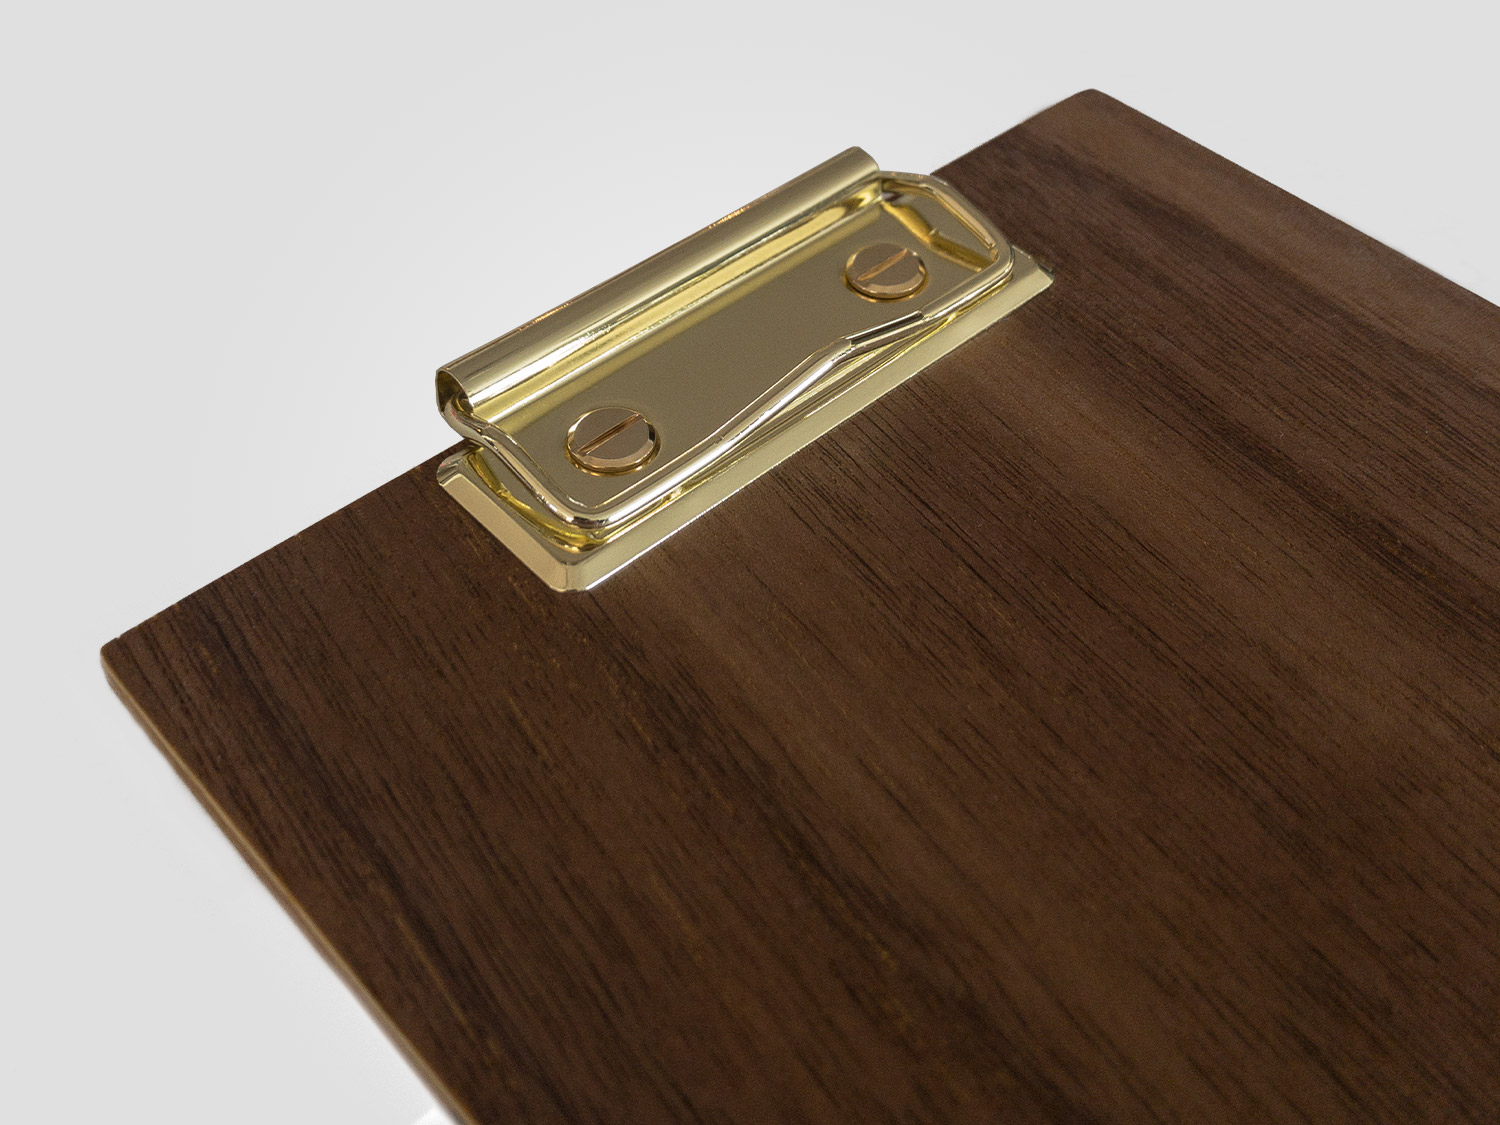 Photo of sample walnut desk calendar with brass coated clip.